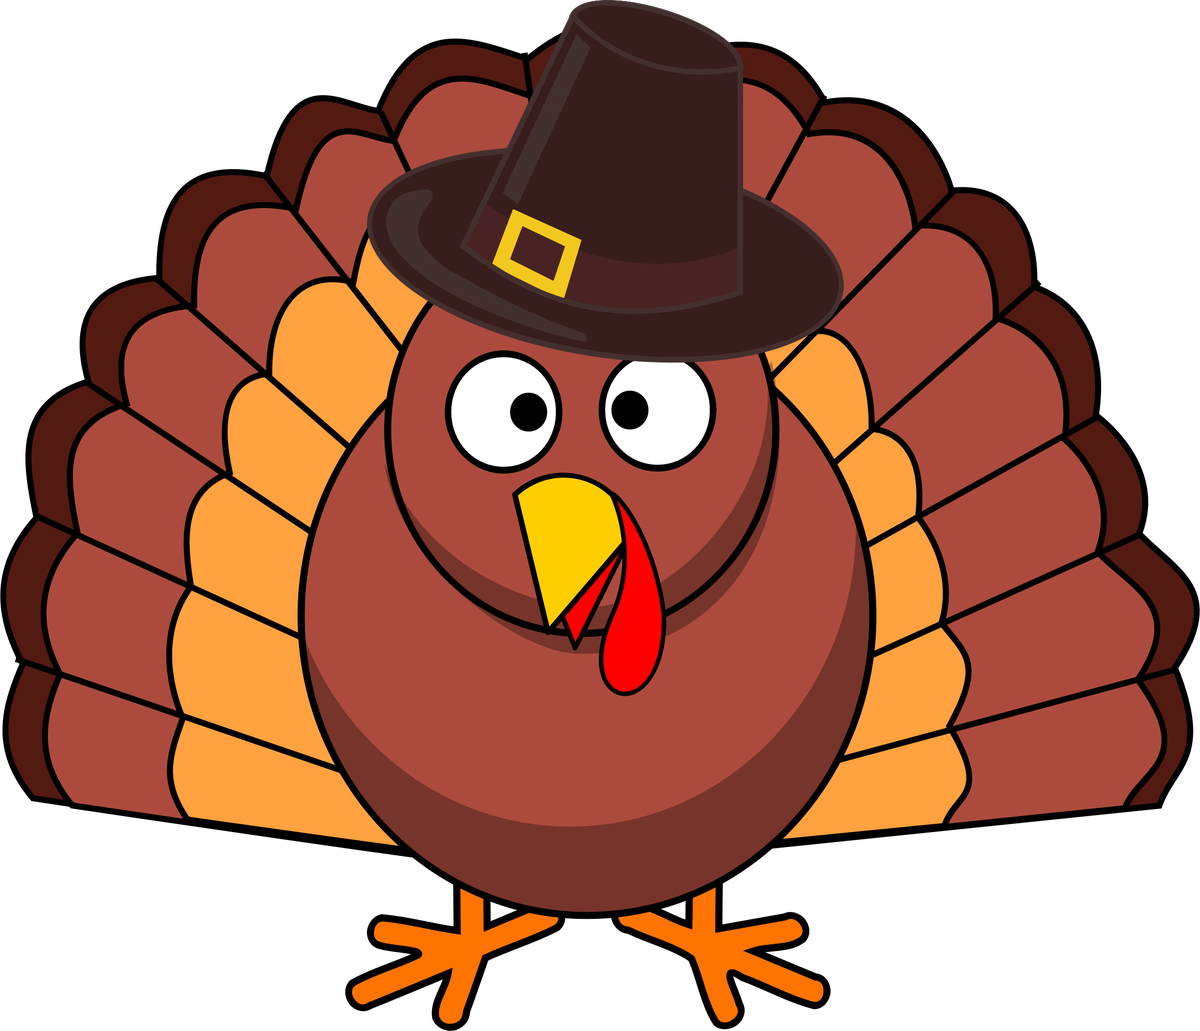 Gobbling turkey clipart with sound graphic transparent St. Pat. Erinsville on Twitter: